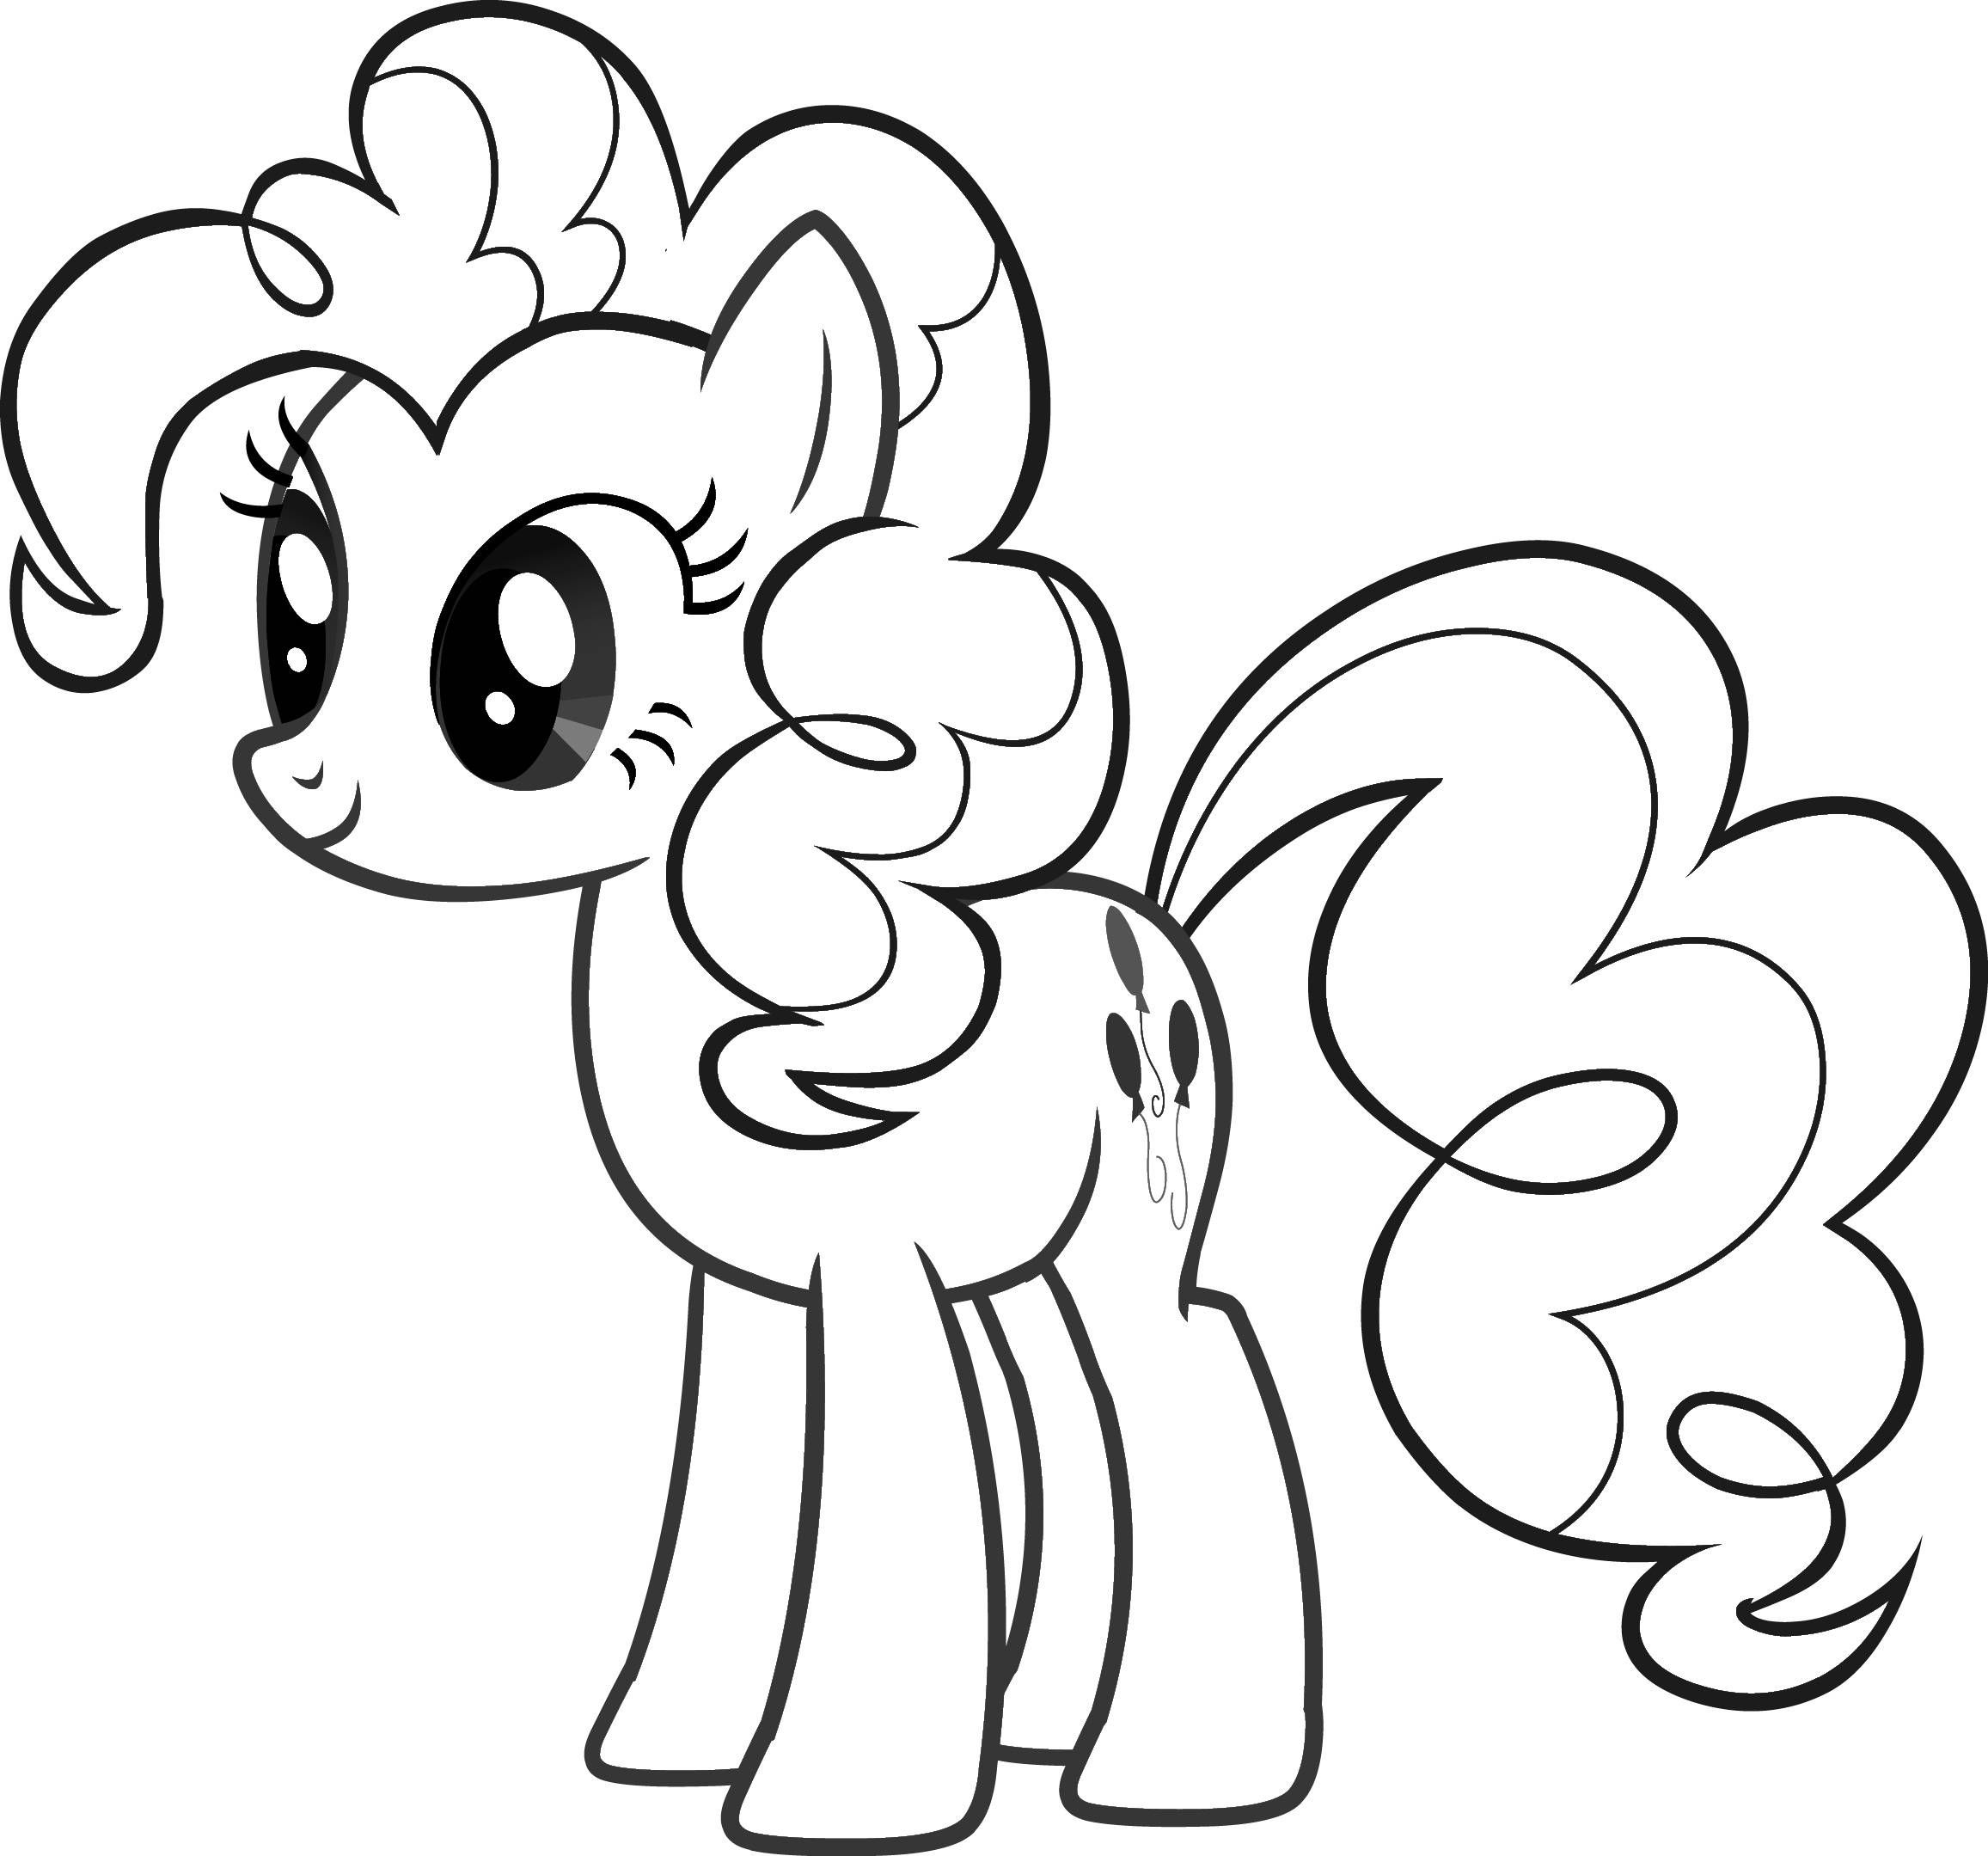 My little pony coloring pages for kids free - My Little Pony Coloring Pages